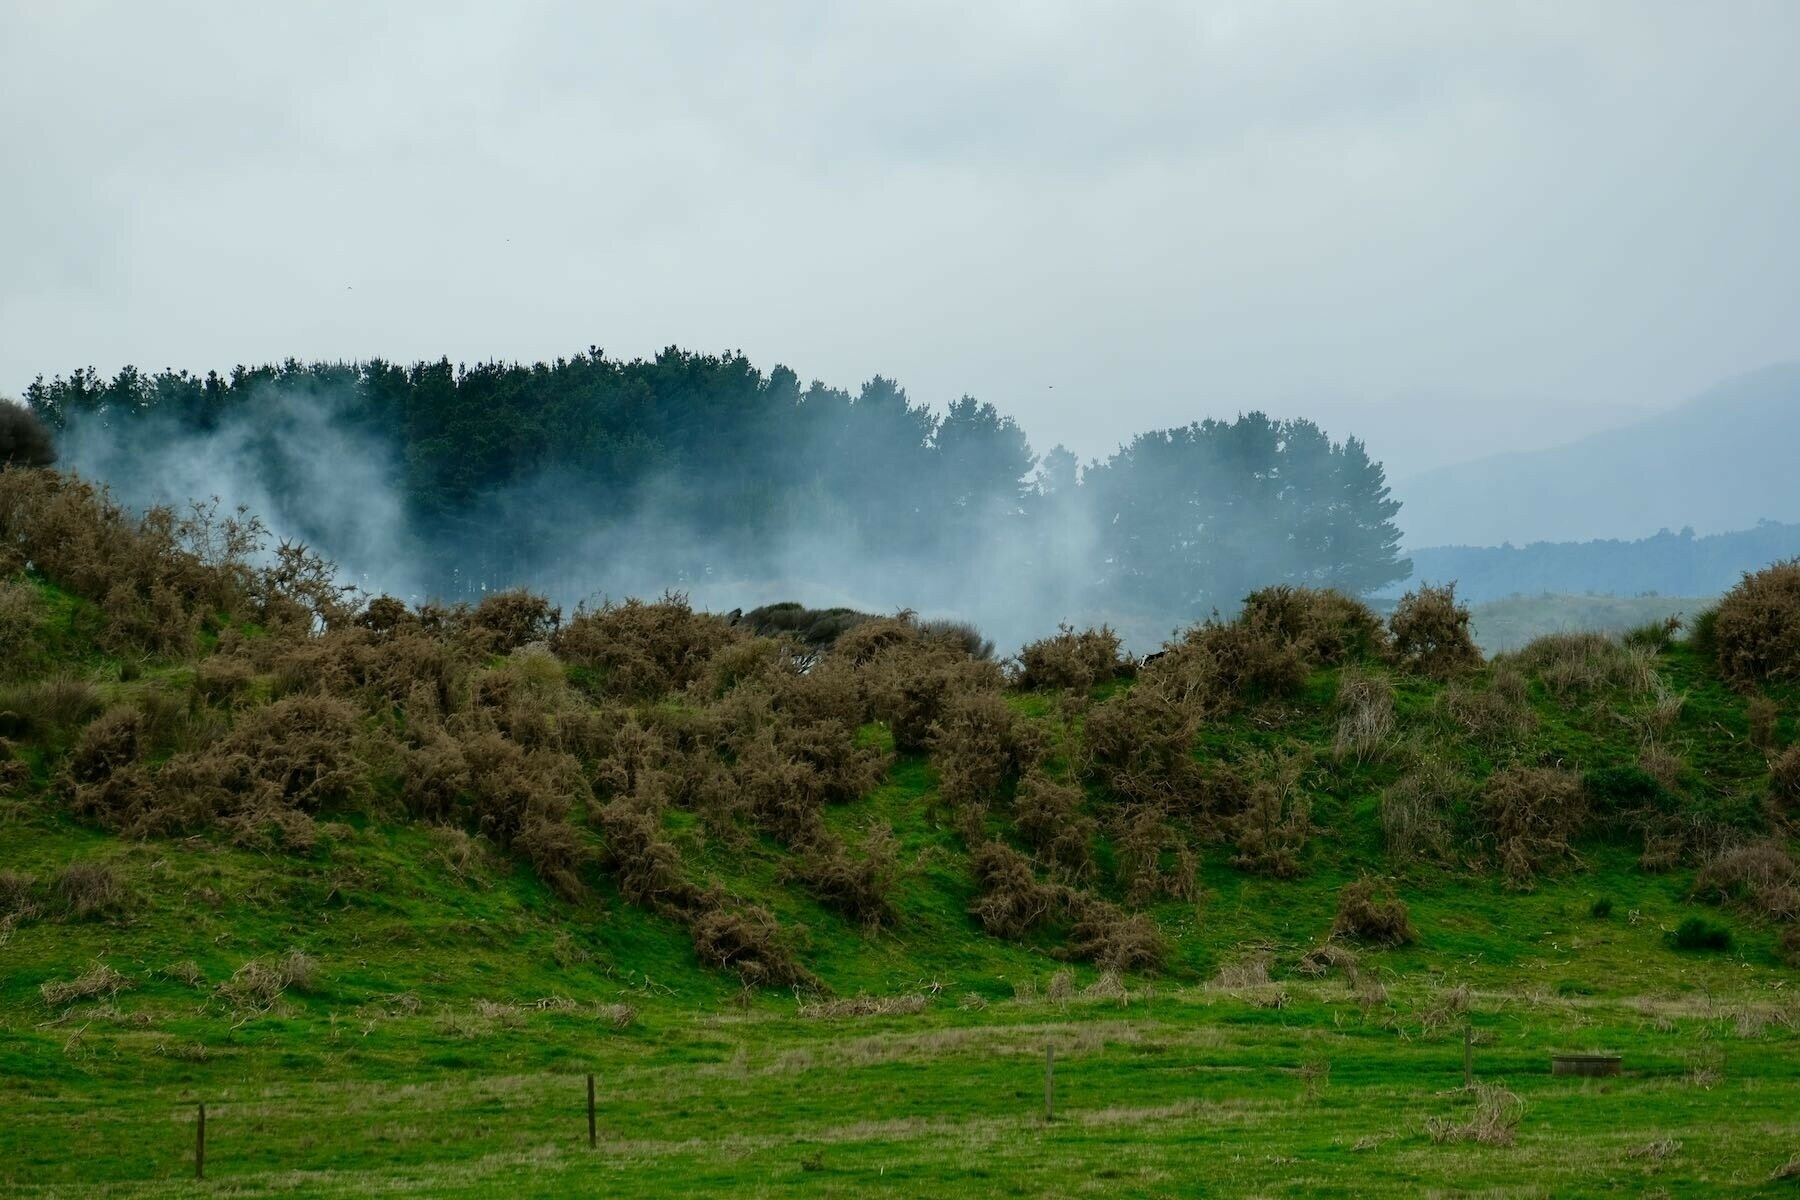 Spreading smoke from the green waste fire.